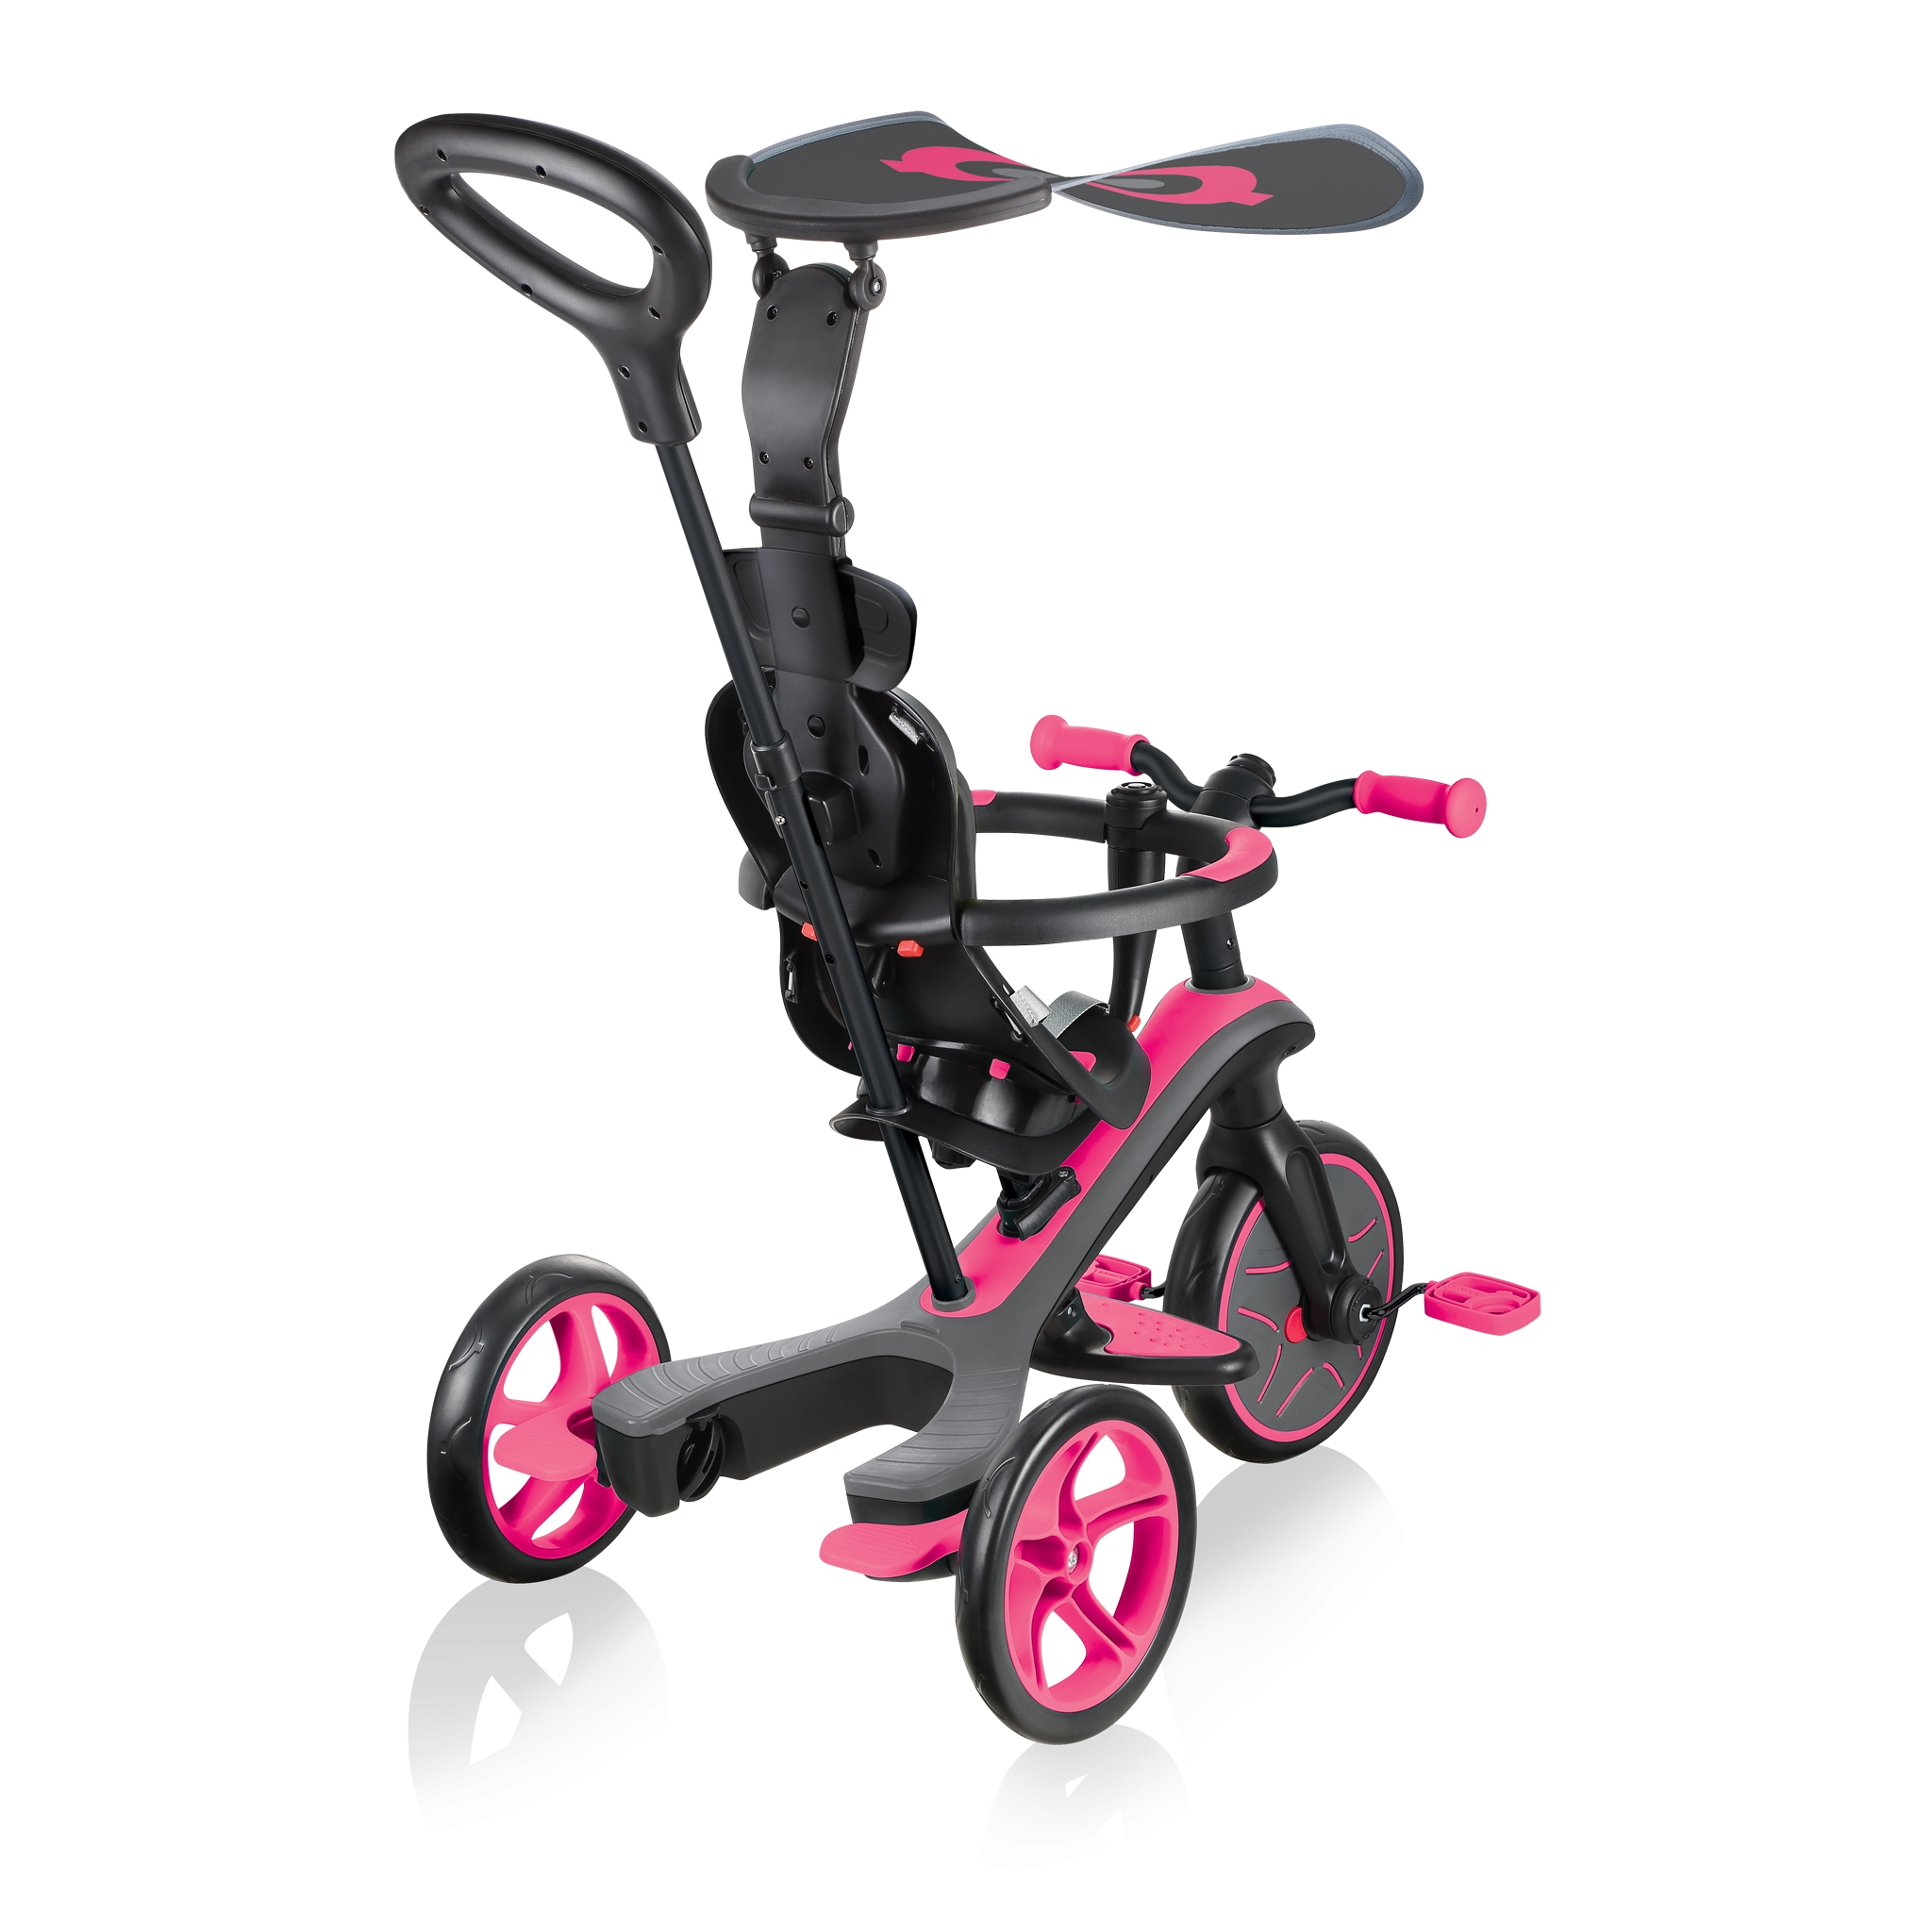 Globber-EXPLORER-TRIKE-4in1-all-in-one-baby-tricycle-and-kids-balance-bike-stage1-infant-trike 6